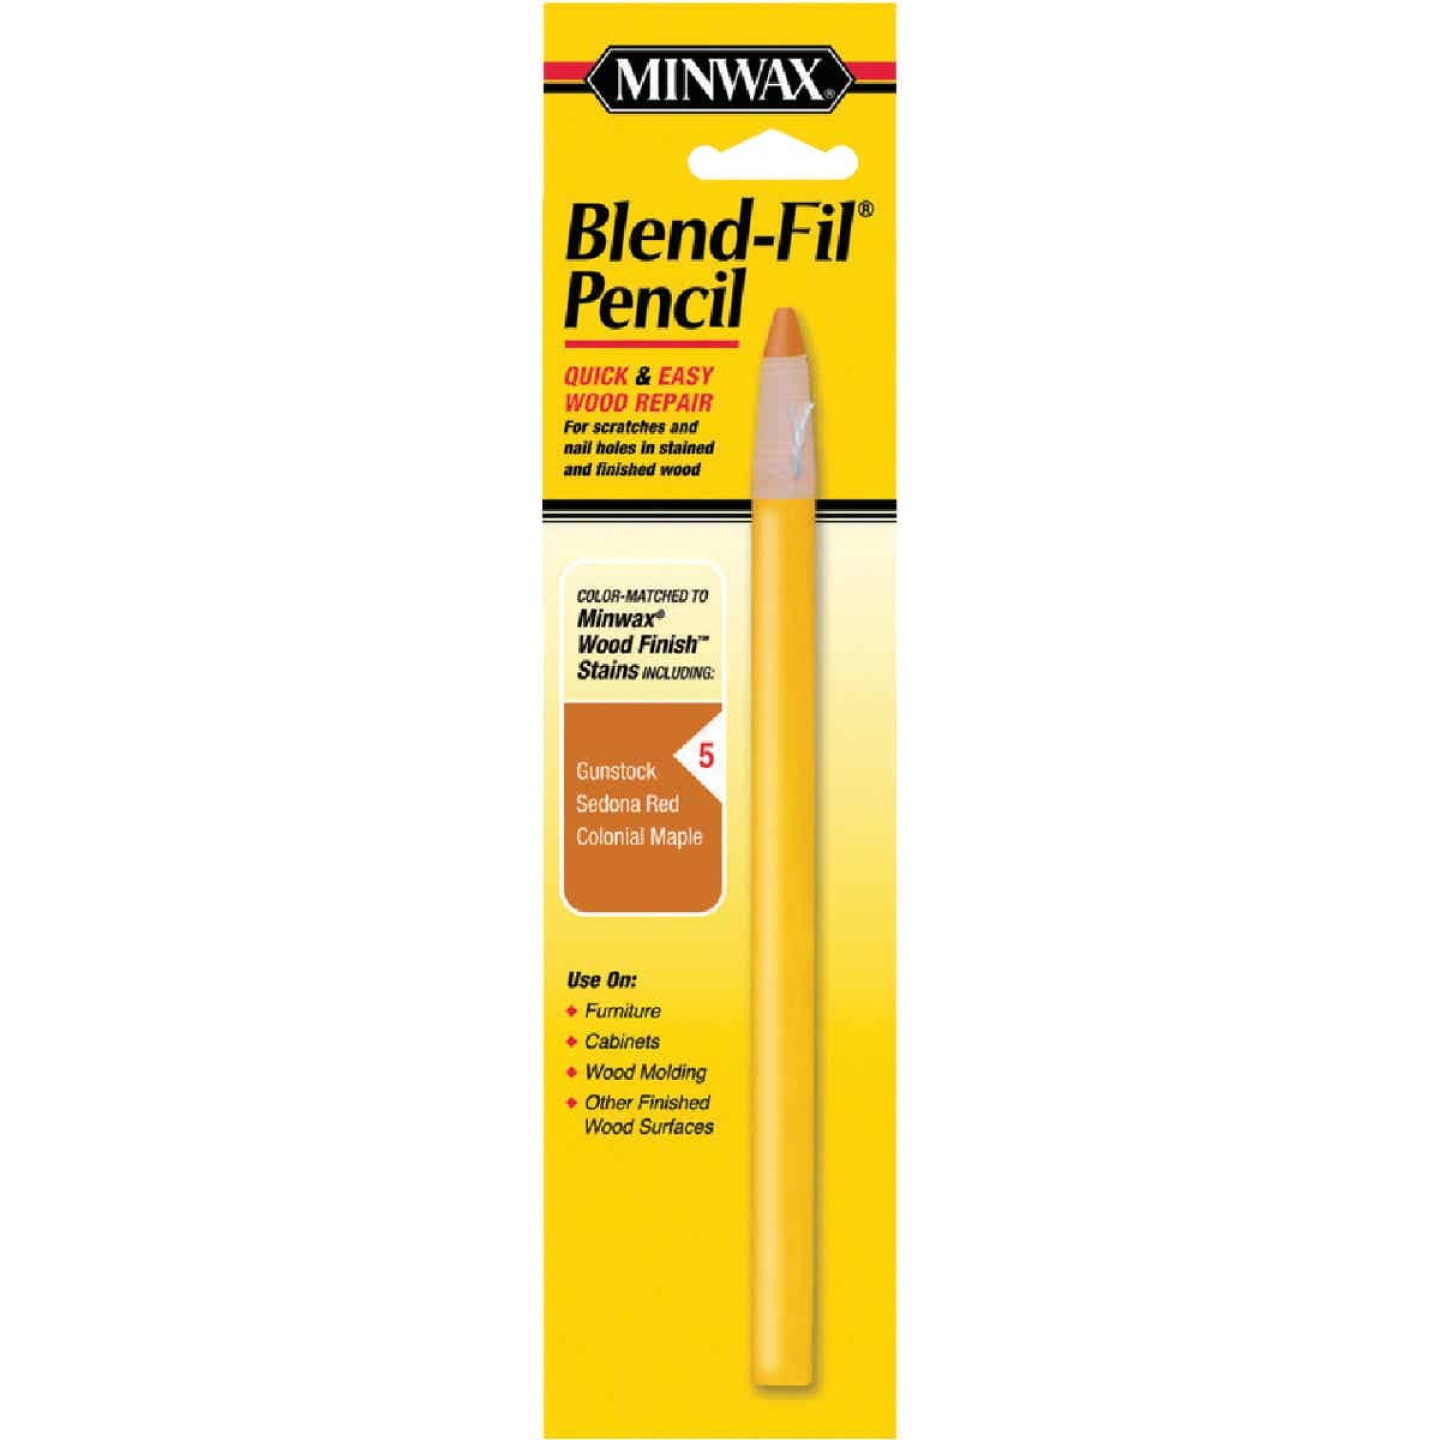 Minwax Blend-Fil Color Group 5 Touch-Up Pencil Image 1